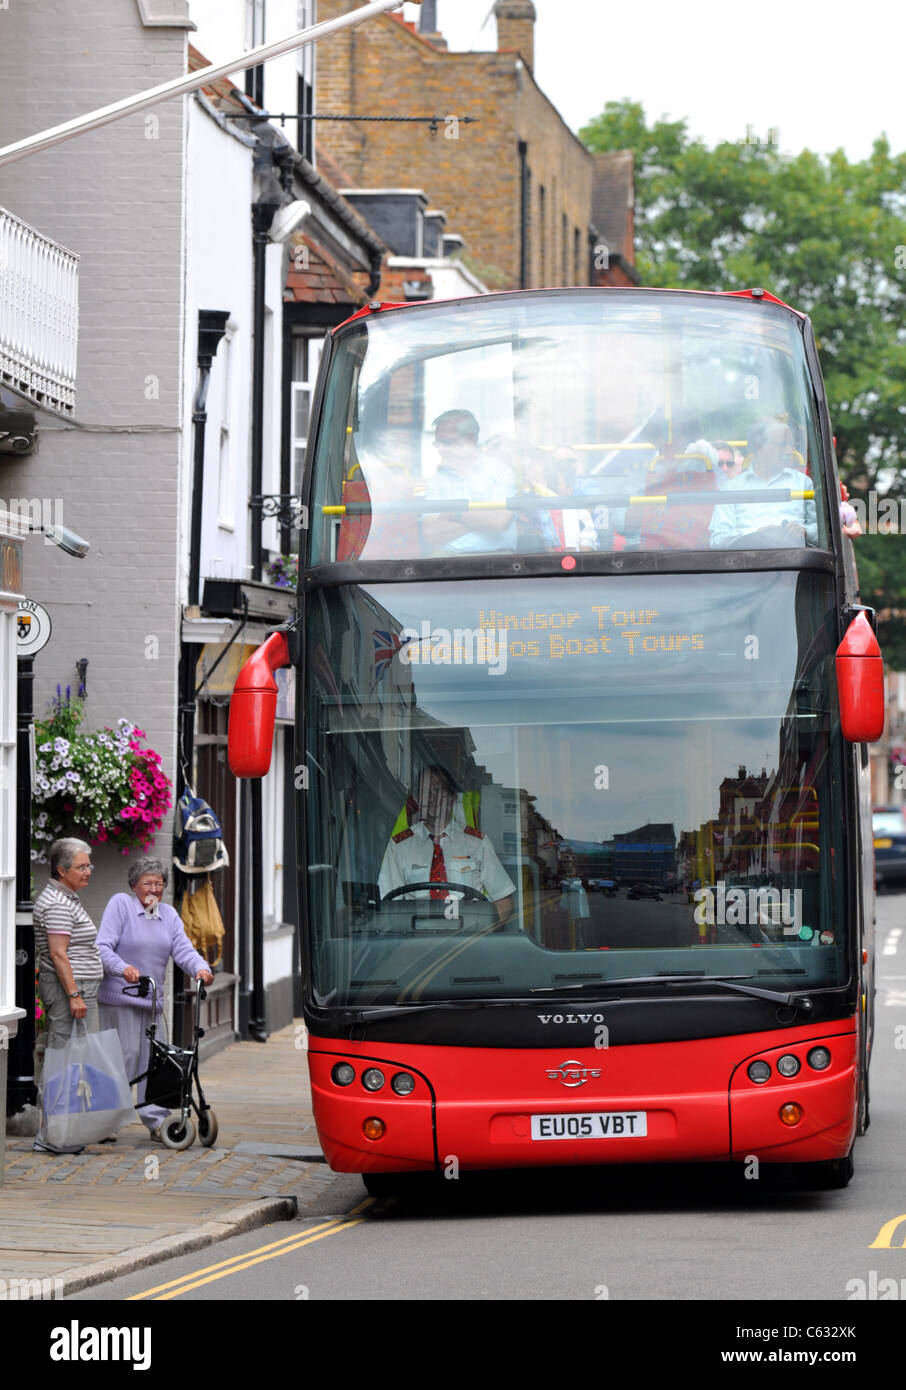 Tourist sightseeing bus, Eton, Berkshire, Britain, UK - Stock Image